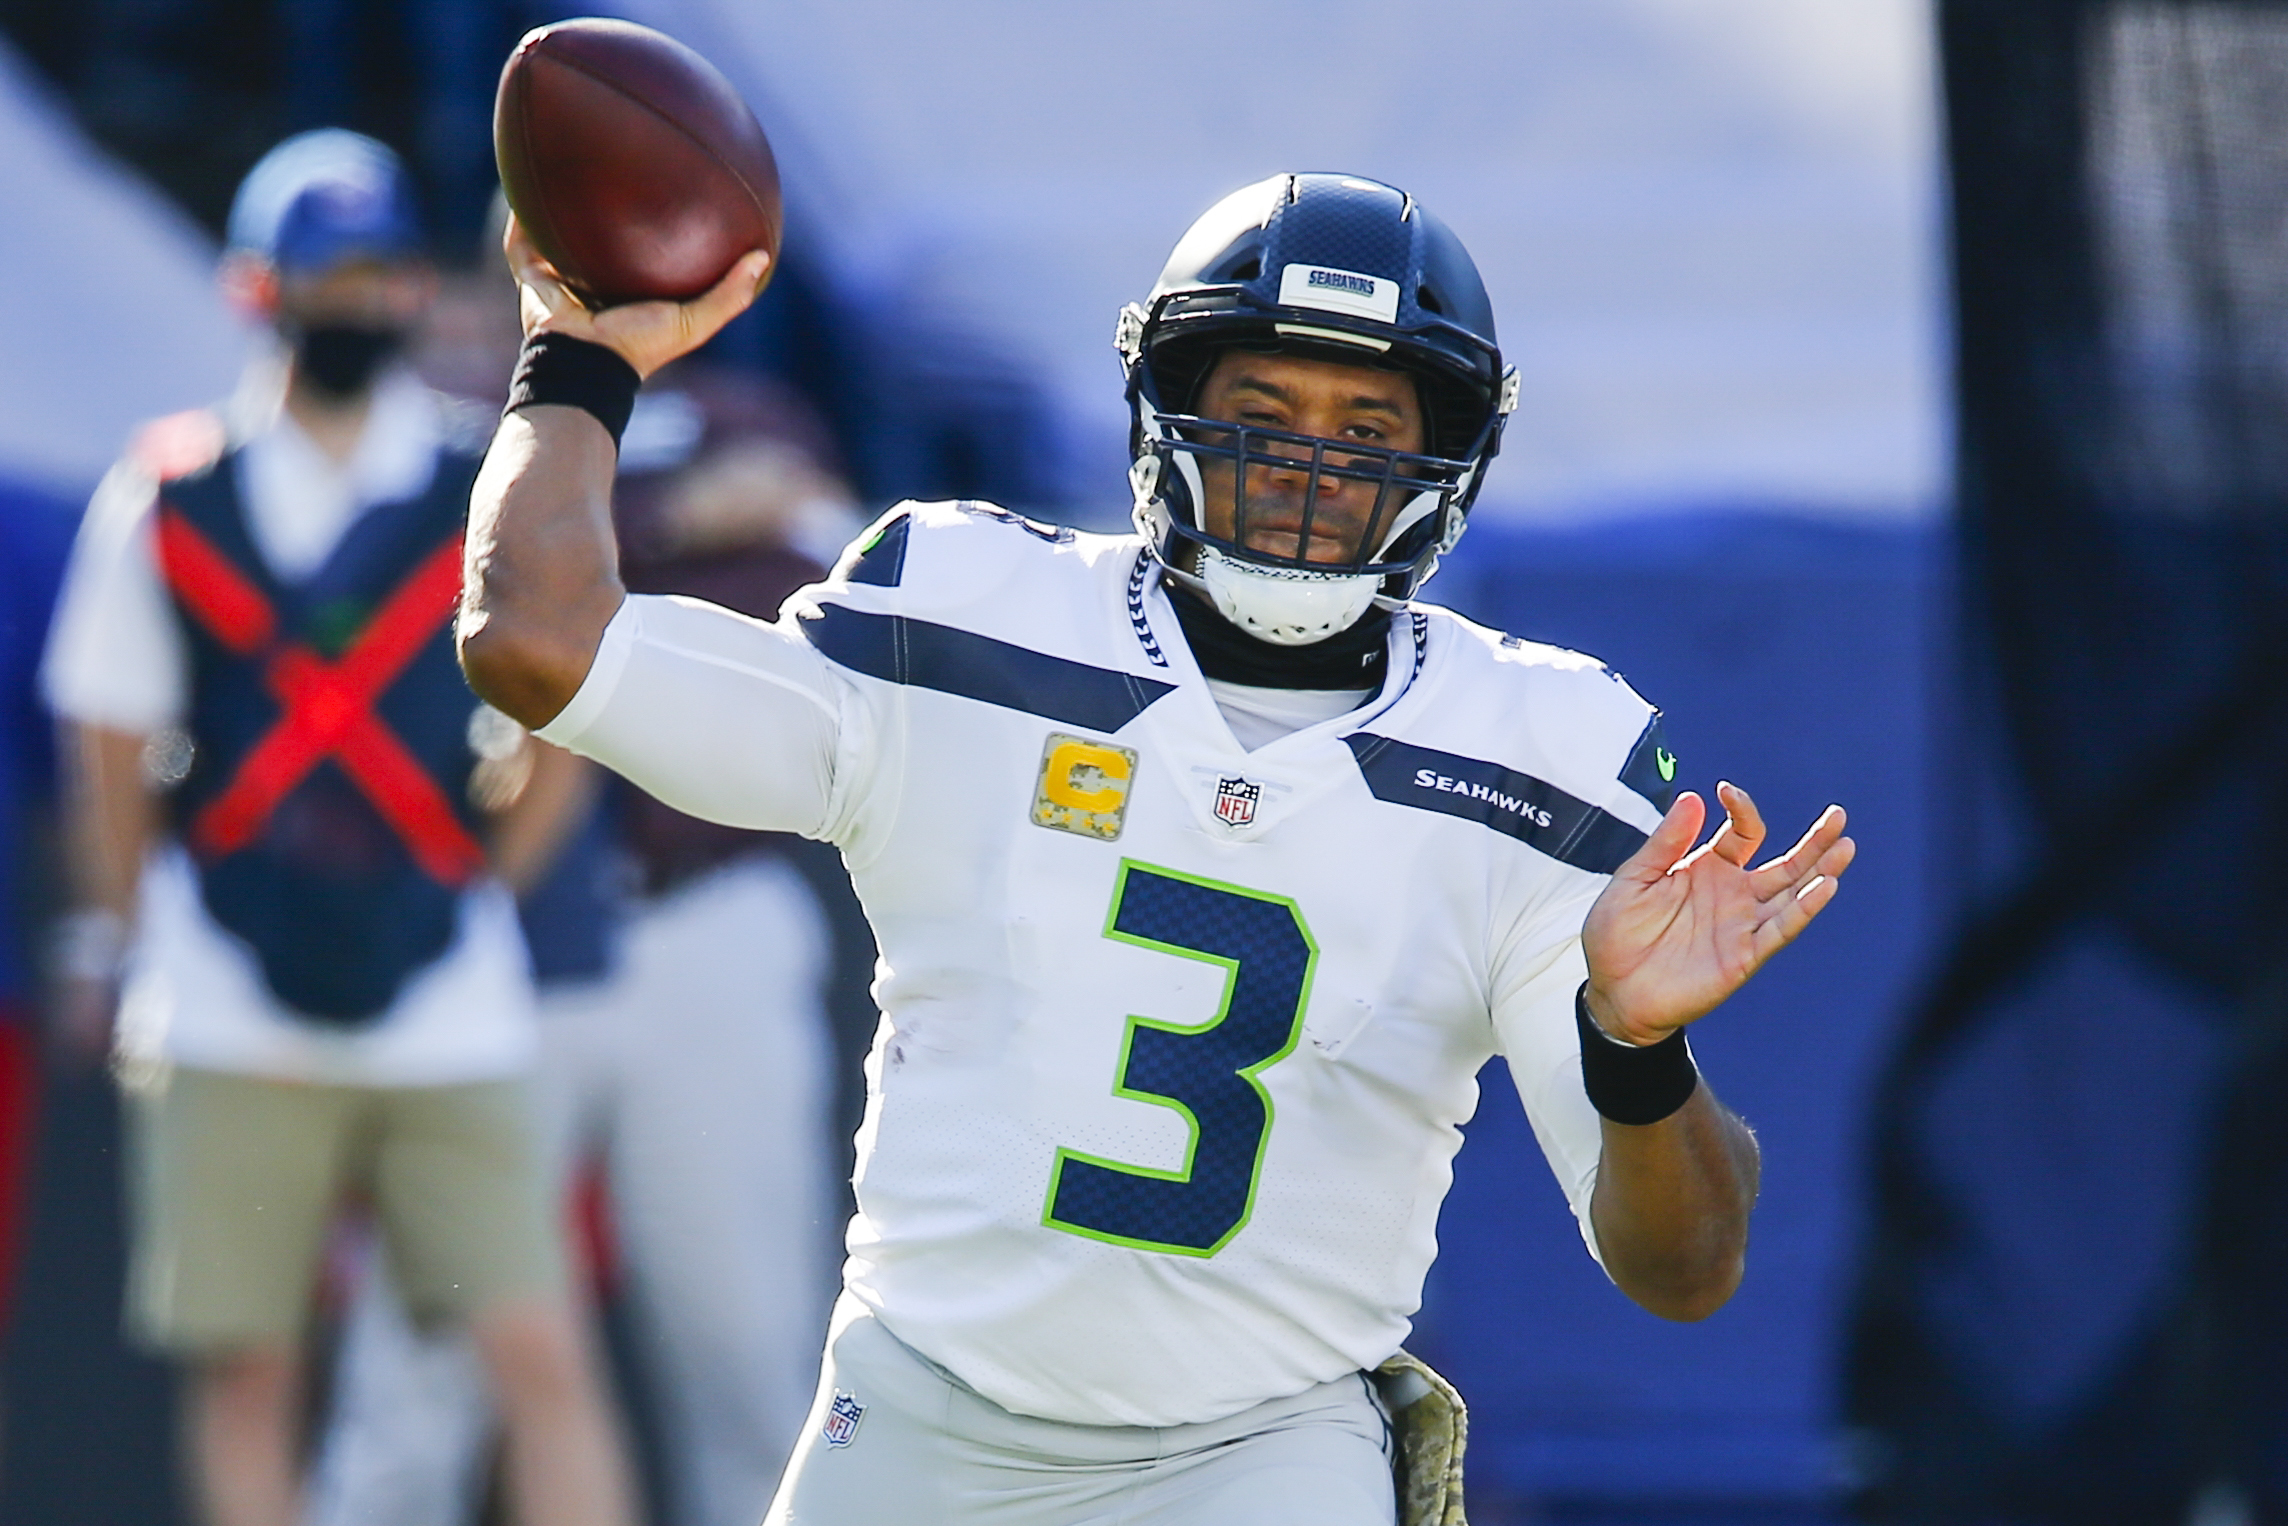 Seahawks rams betting predictions and tips ufc betting games